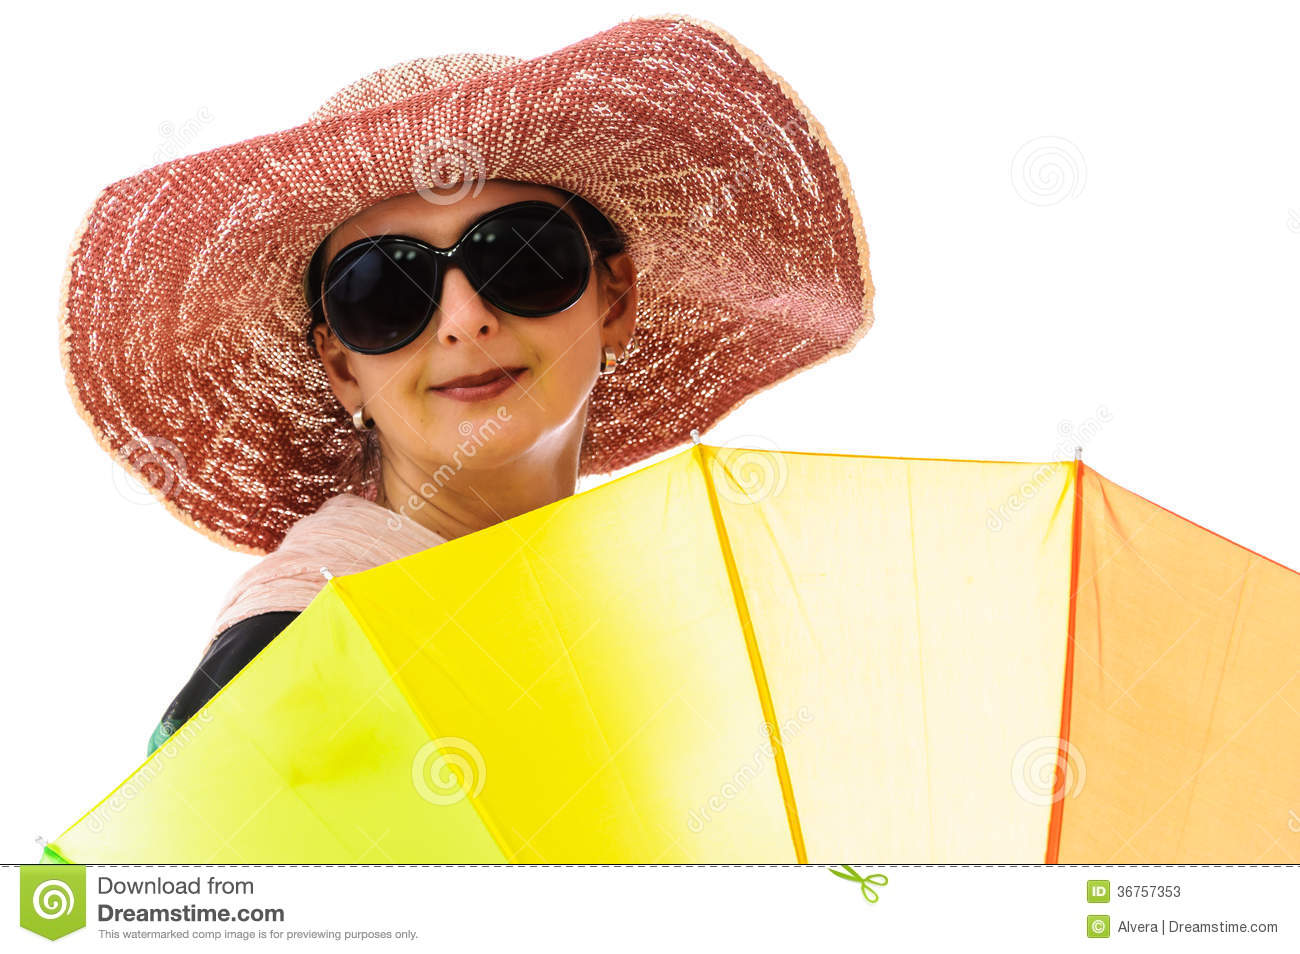 Woman behind rainbow colored umbrella. Summer clothing and accessories